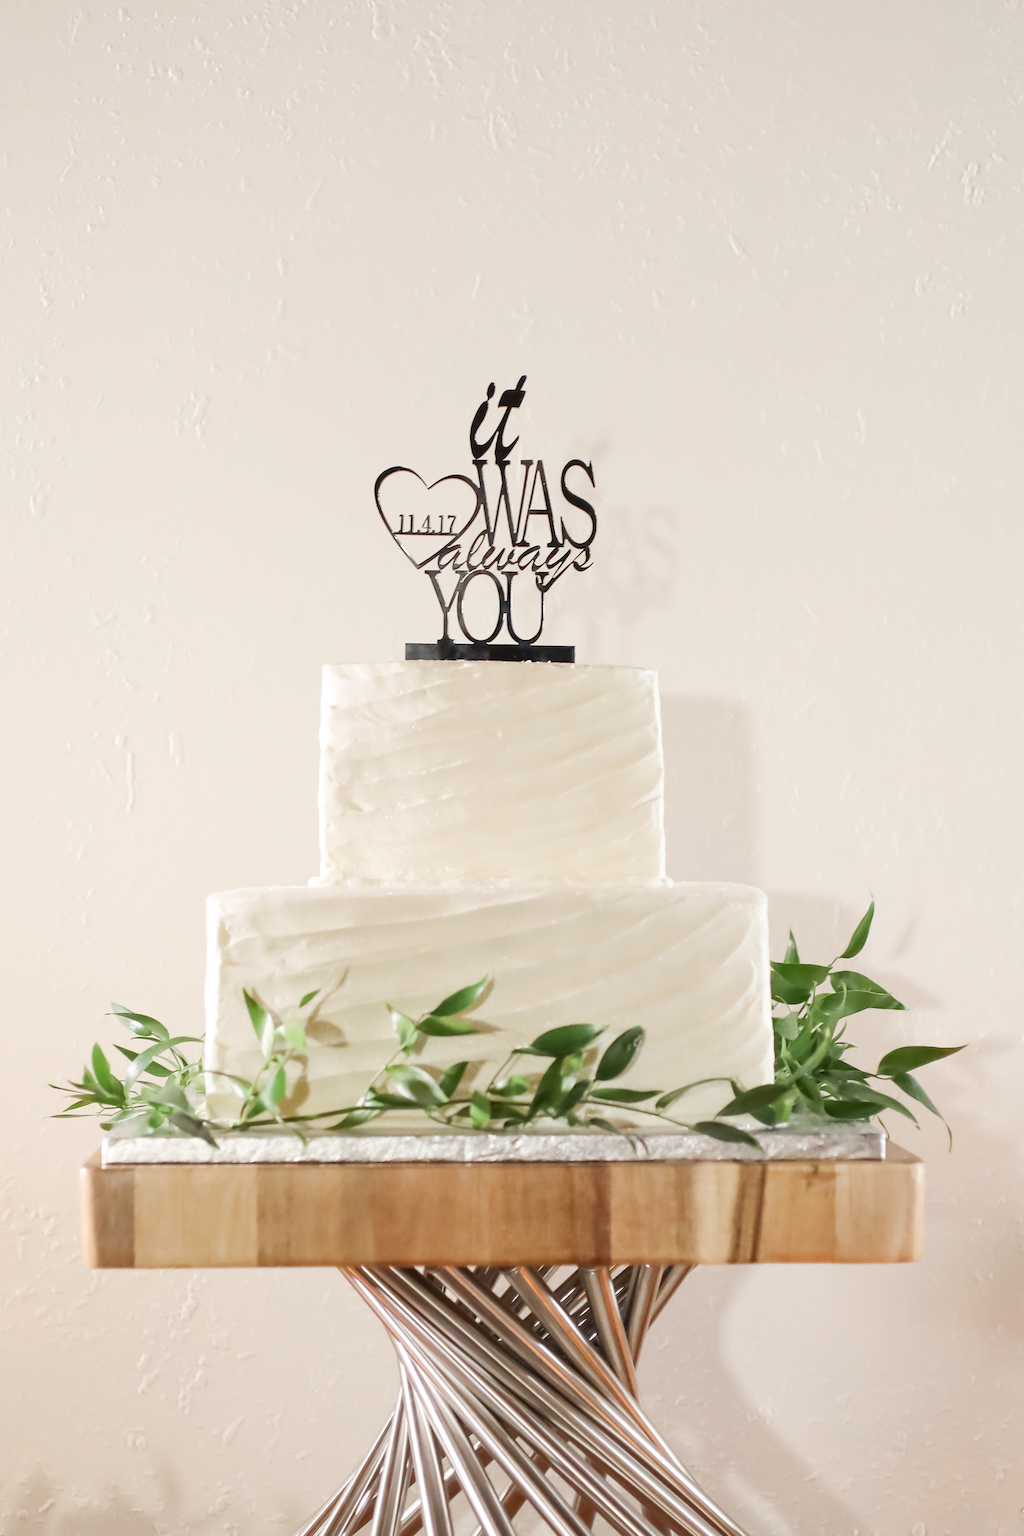 Two White Tier Wedding Cake with Greenery Wreath and Black Laser Cut Cake Topper   Tampa Bay Wedding Photographer Lifelong Photography Studios   Wedding Rentals A Chair Affair